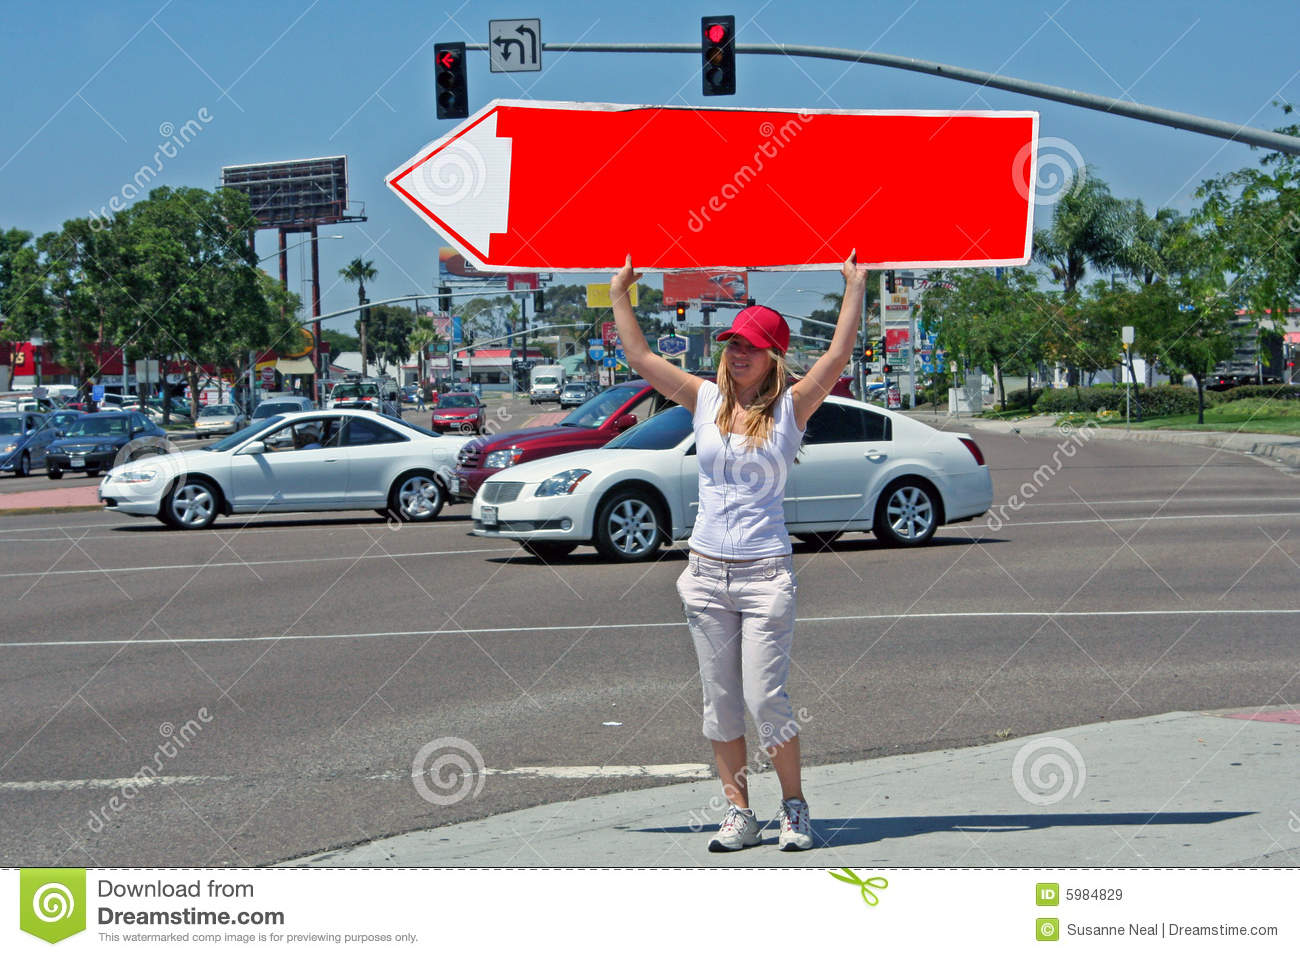 Sign Twirler (Spinner)